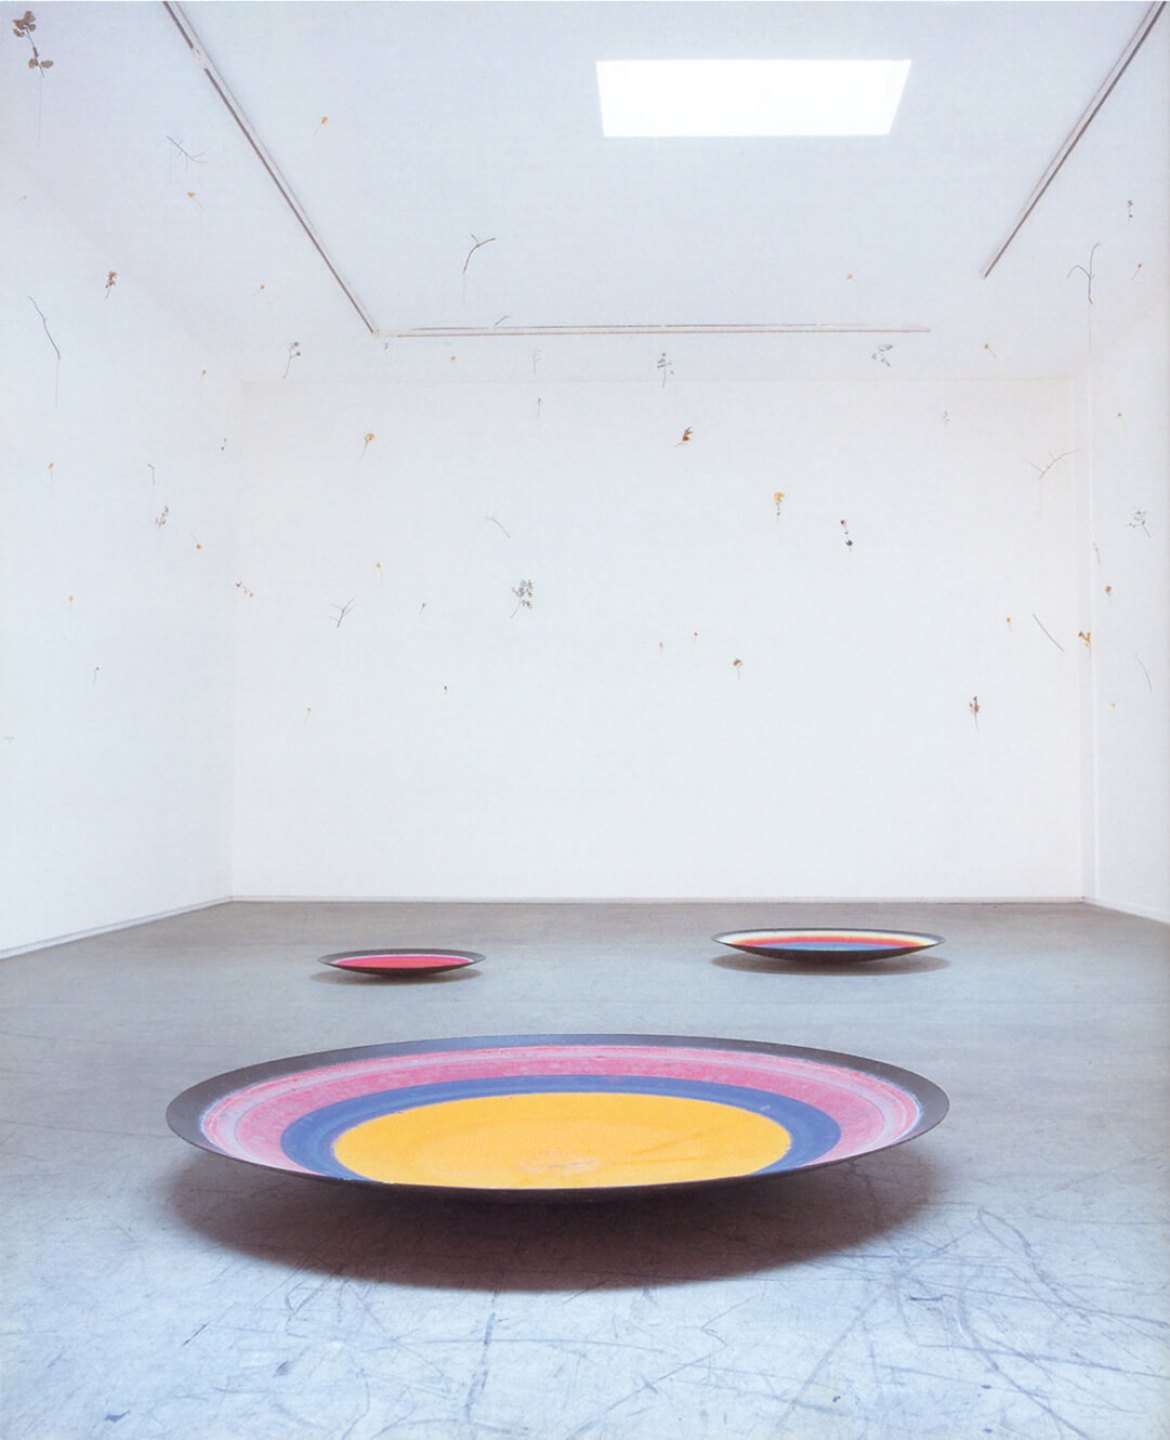 Daniel Steegmann Mangrané,<em>Mientras una flor se marchita</em>, 1998, evaporated watercolor on galvanized iron plates, a few hundred branches and dried leaves, silk plates have 150, 90 and 60 cm in diameter, the instalation has variable dimensions - Mendes Wood DM